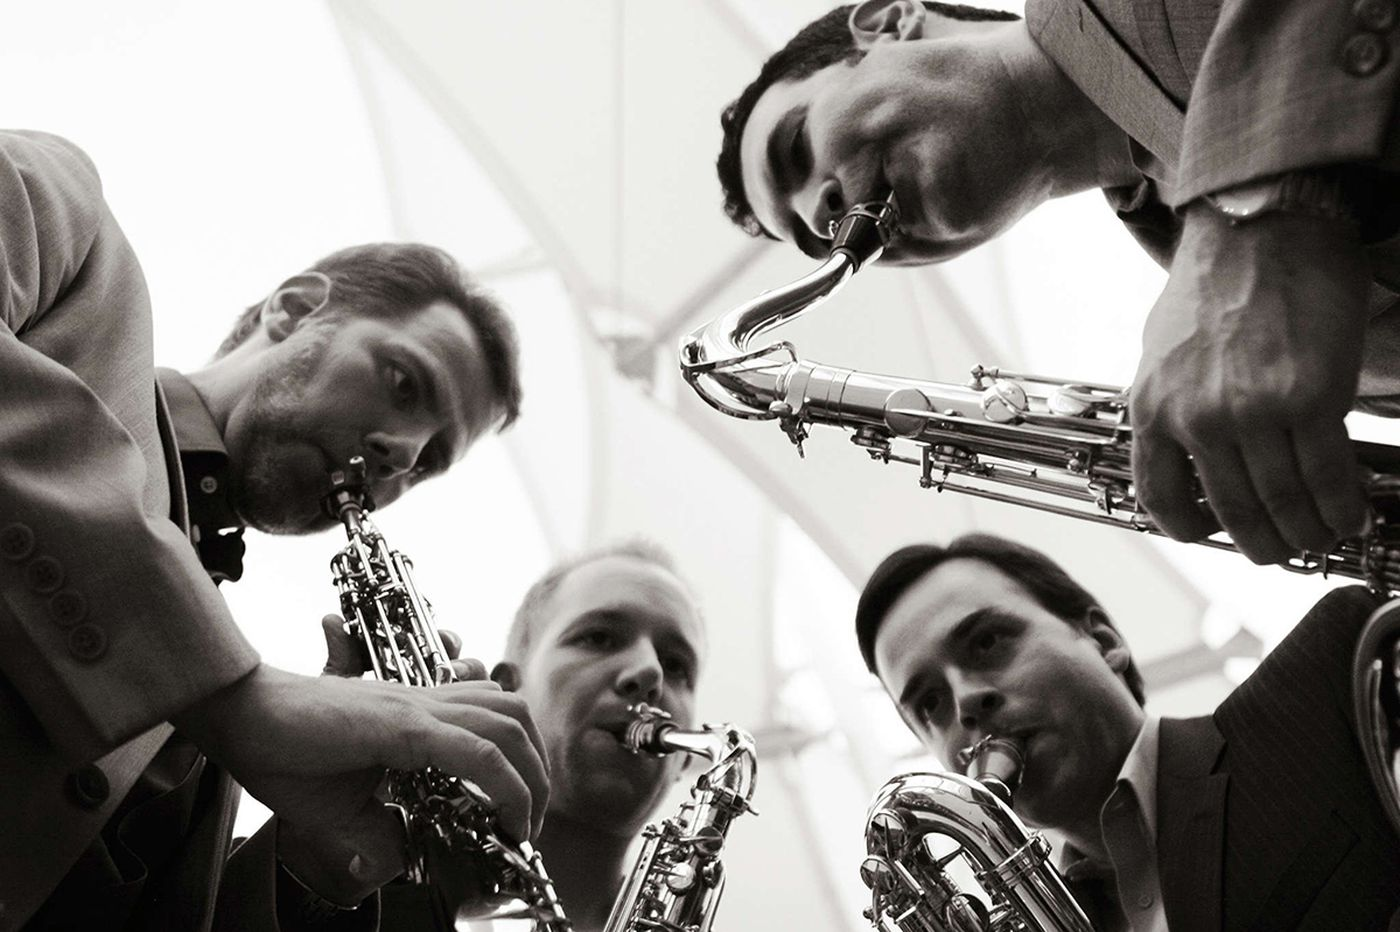 PRISM sax quartet makes new music with the fantastical inventions of Harry Partch